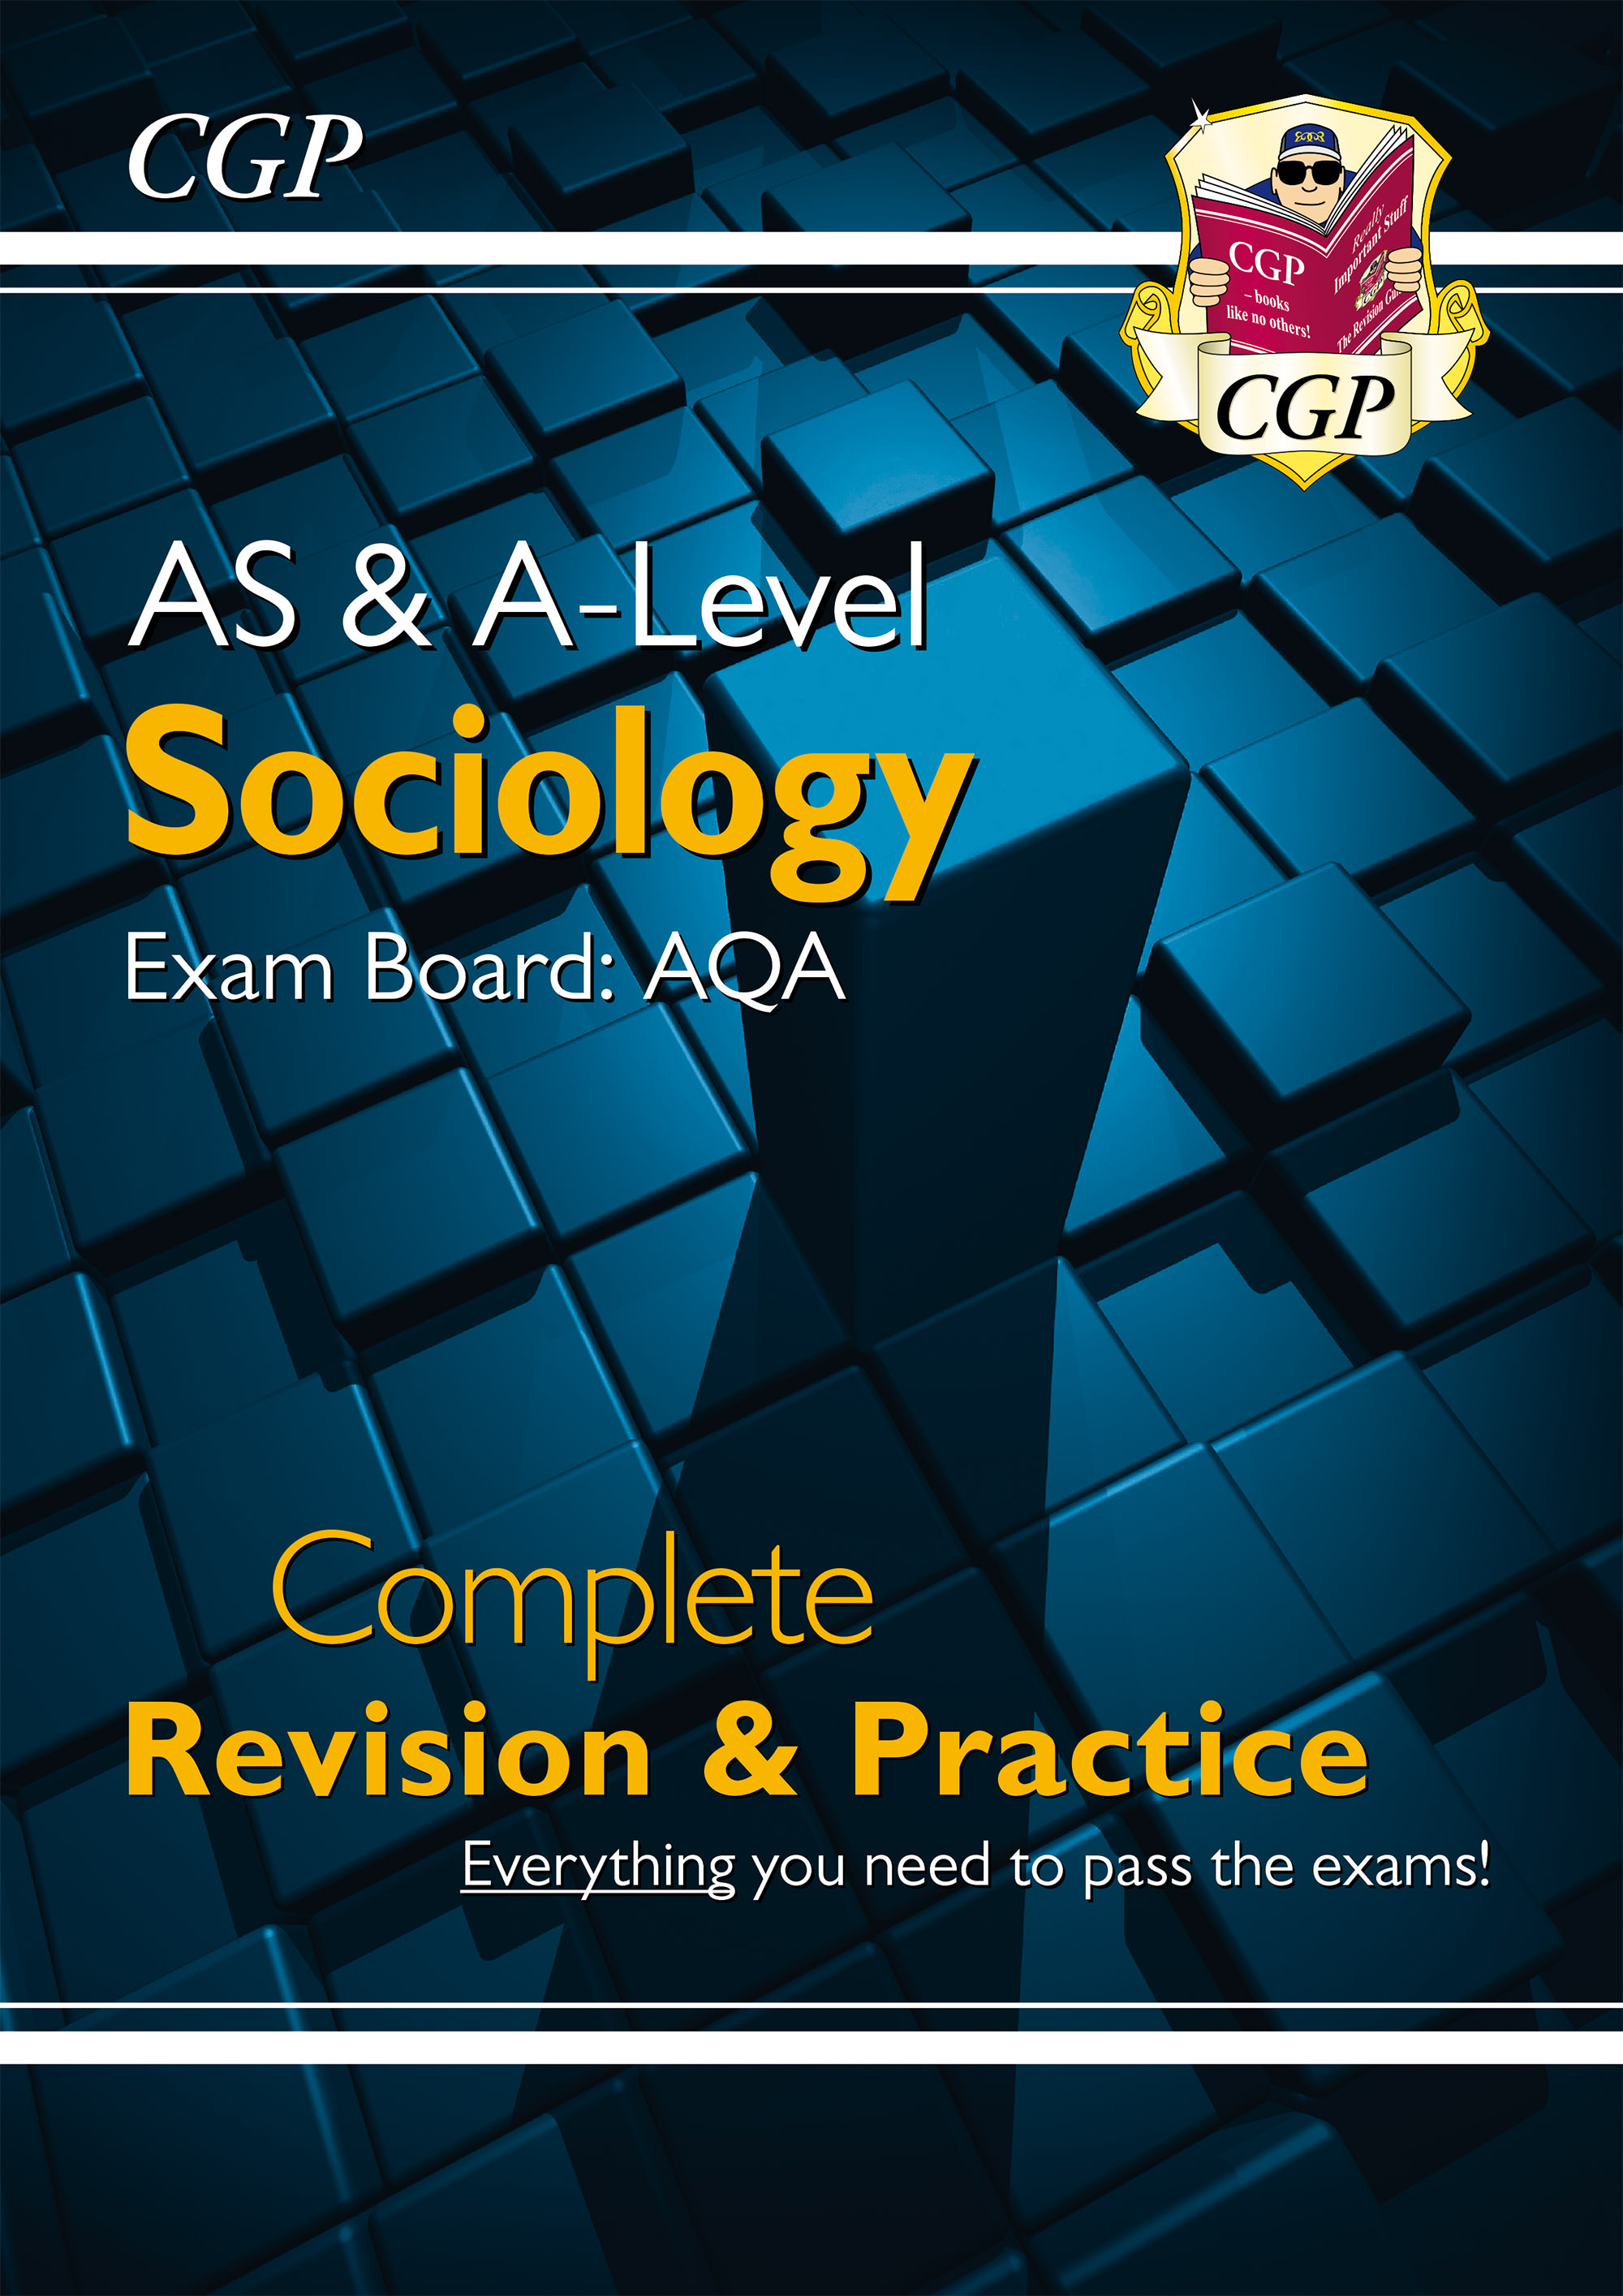 SYAR73DK - New AS and A-Level Sociology: AQA Complete Revision & Practice